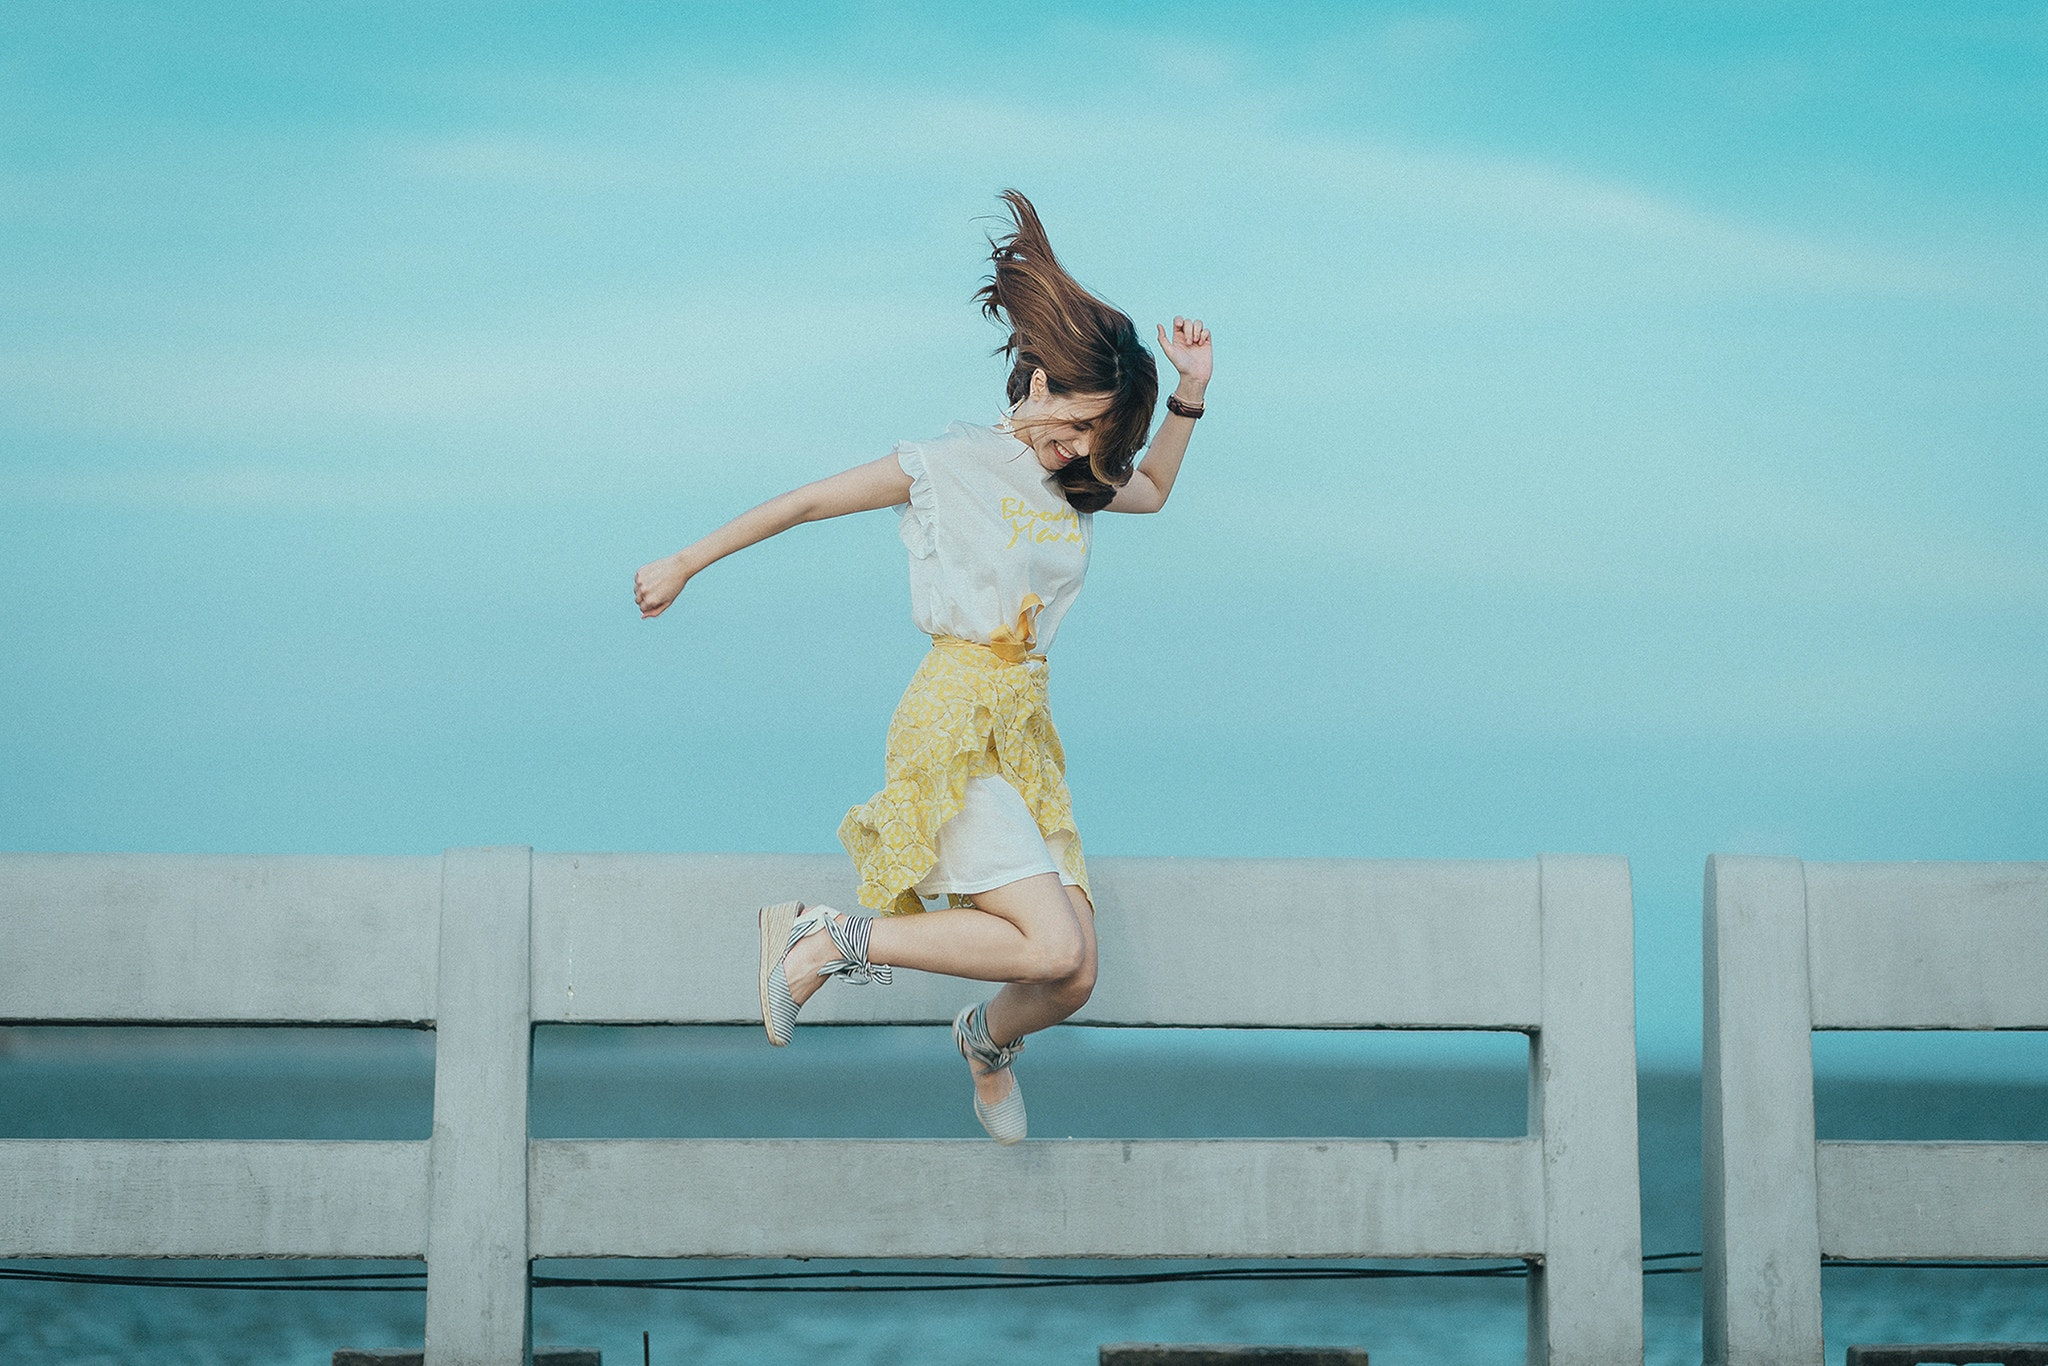 jumpshot-photography-of-woman-in-white-and-yellow-dress-near-884977